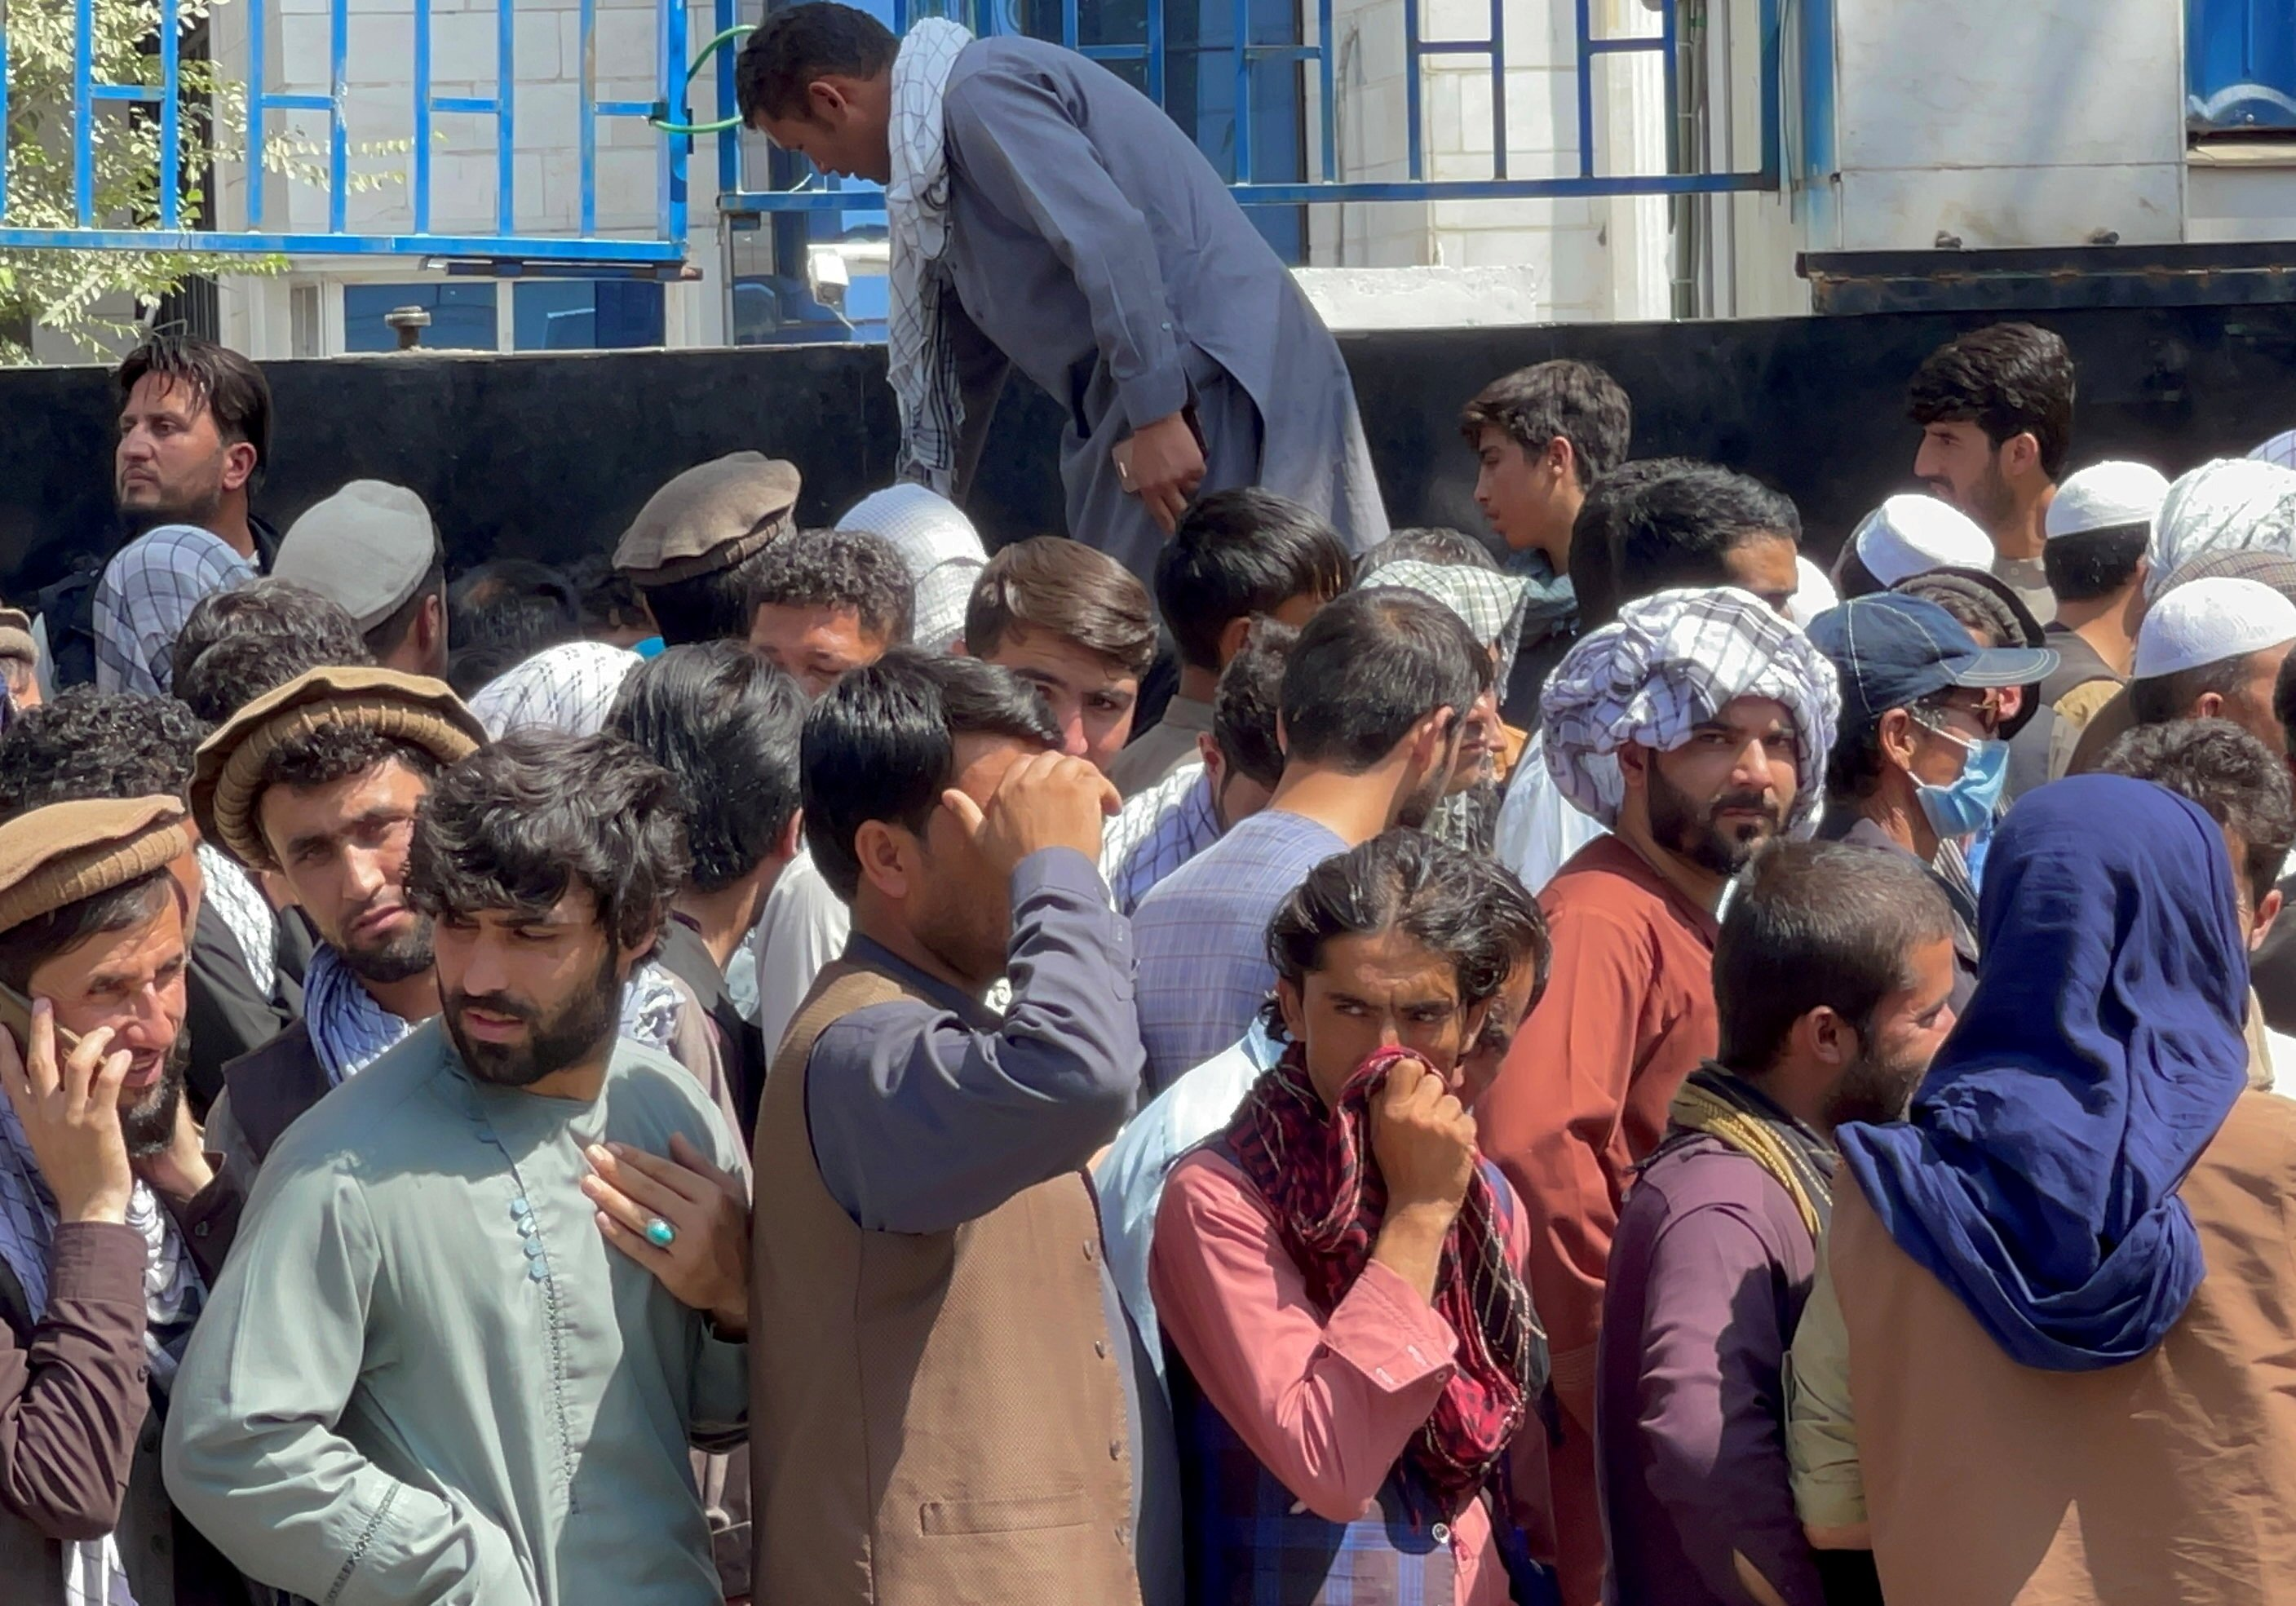 Afghans line up outside a bank to take their money out after Taliban takeover in Kabul, Afghanistan, Sept. 1, 2021. (REUTERS/Stringer)